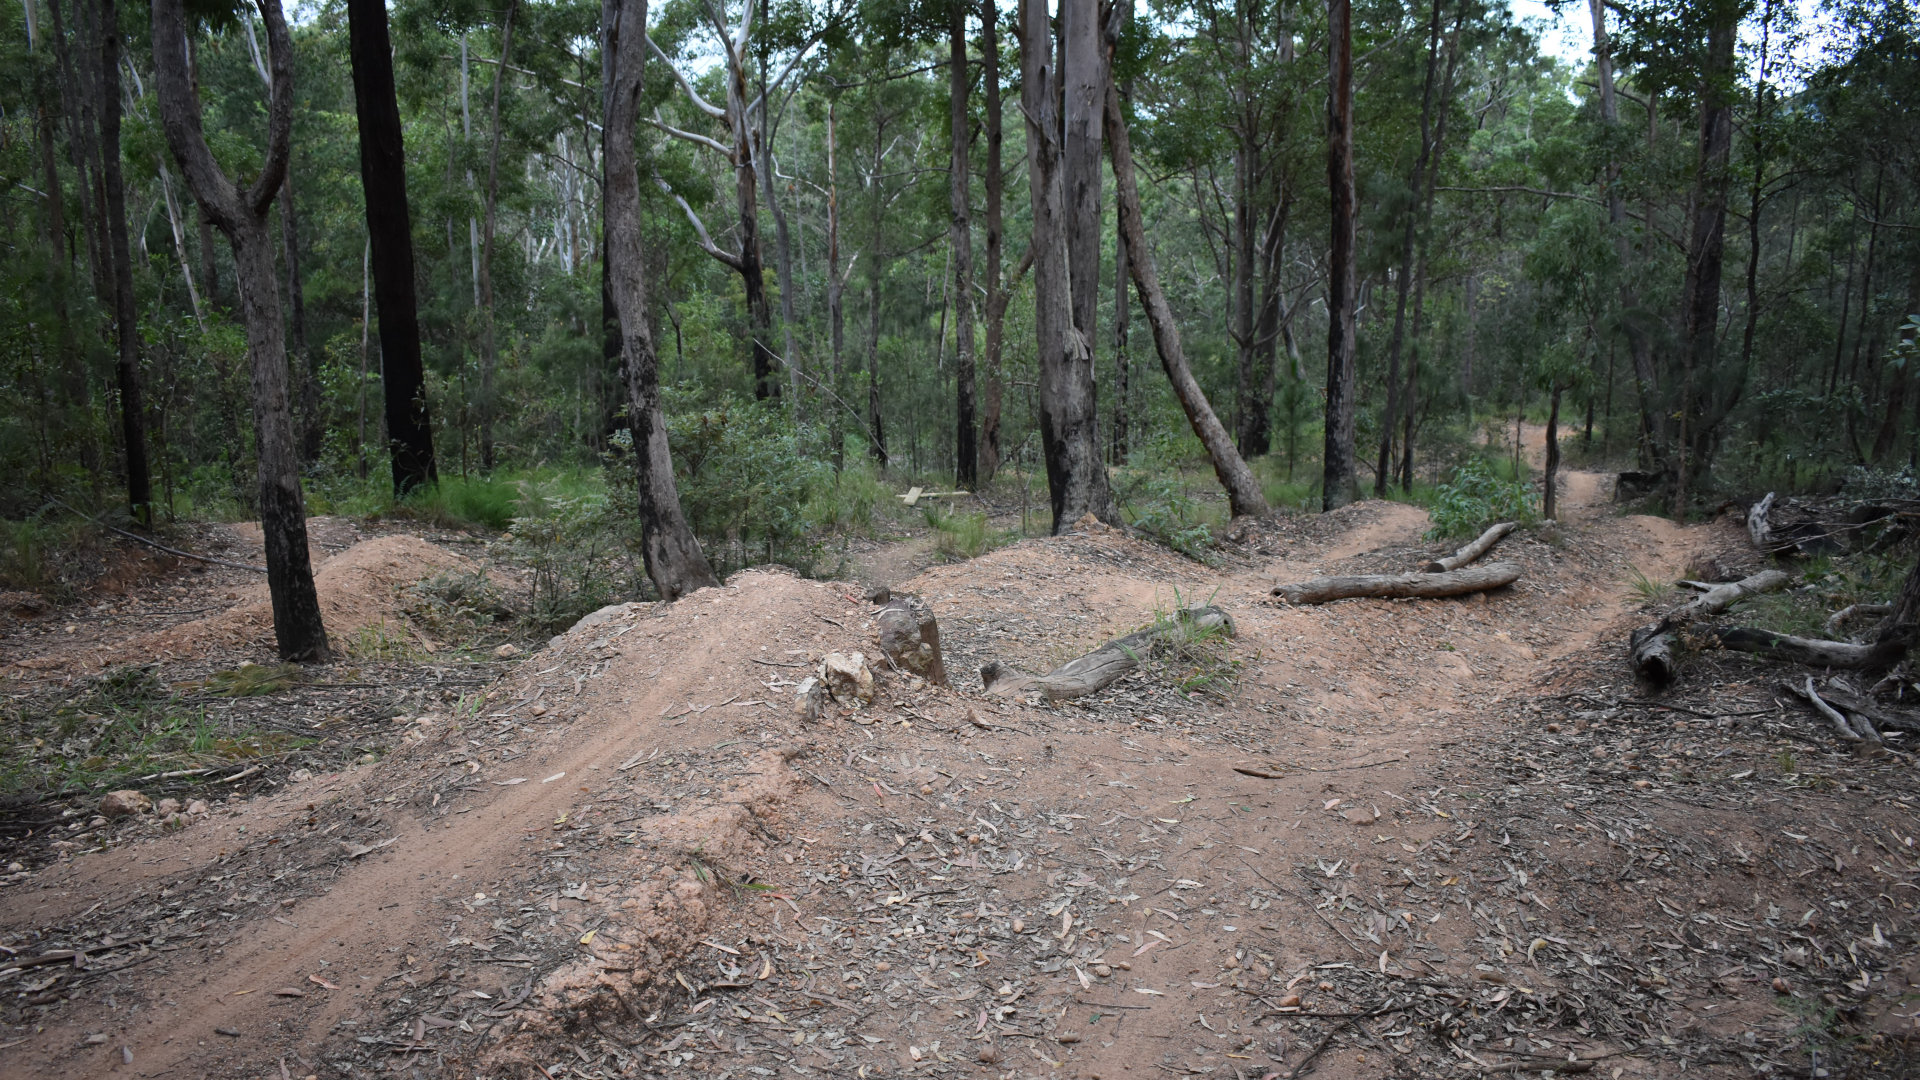 Hennessey Mountain Bike Track, an IMBA black diamond rated downhill track in the Glass House Mountains area, west of the Beerburrum township